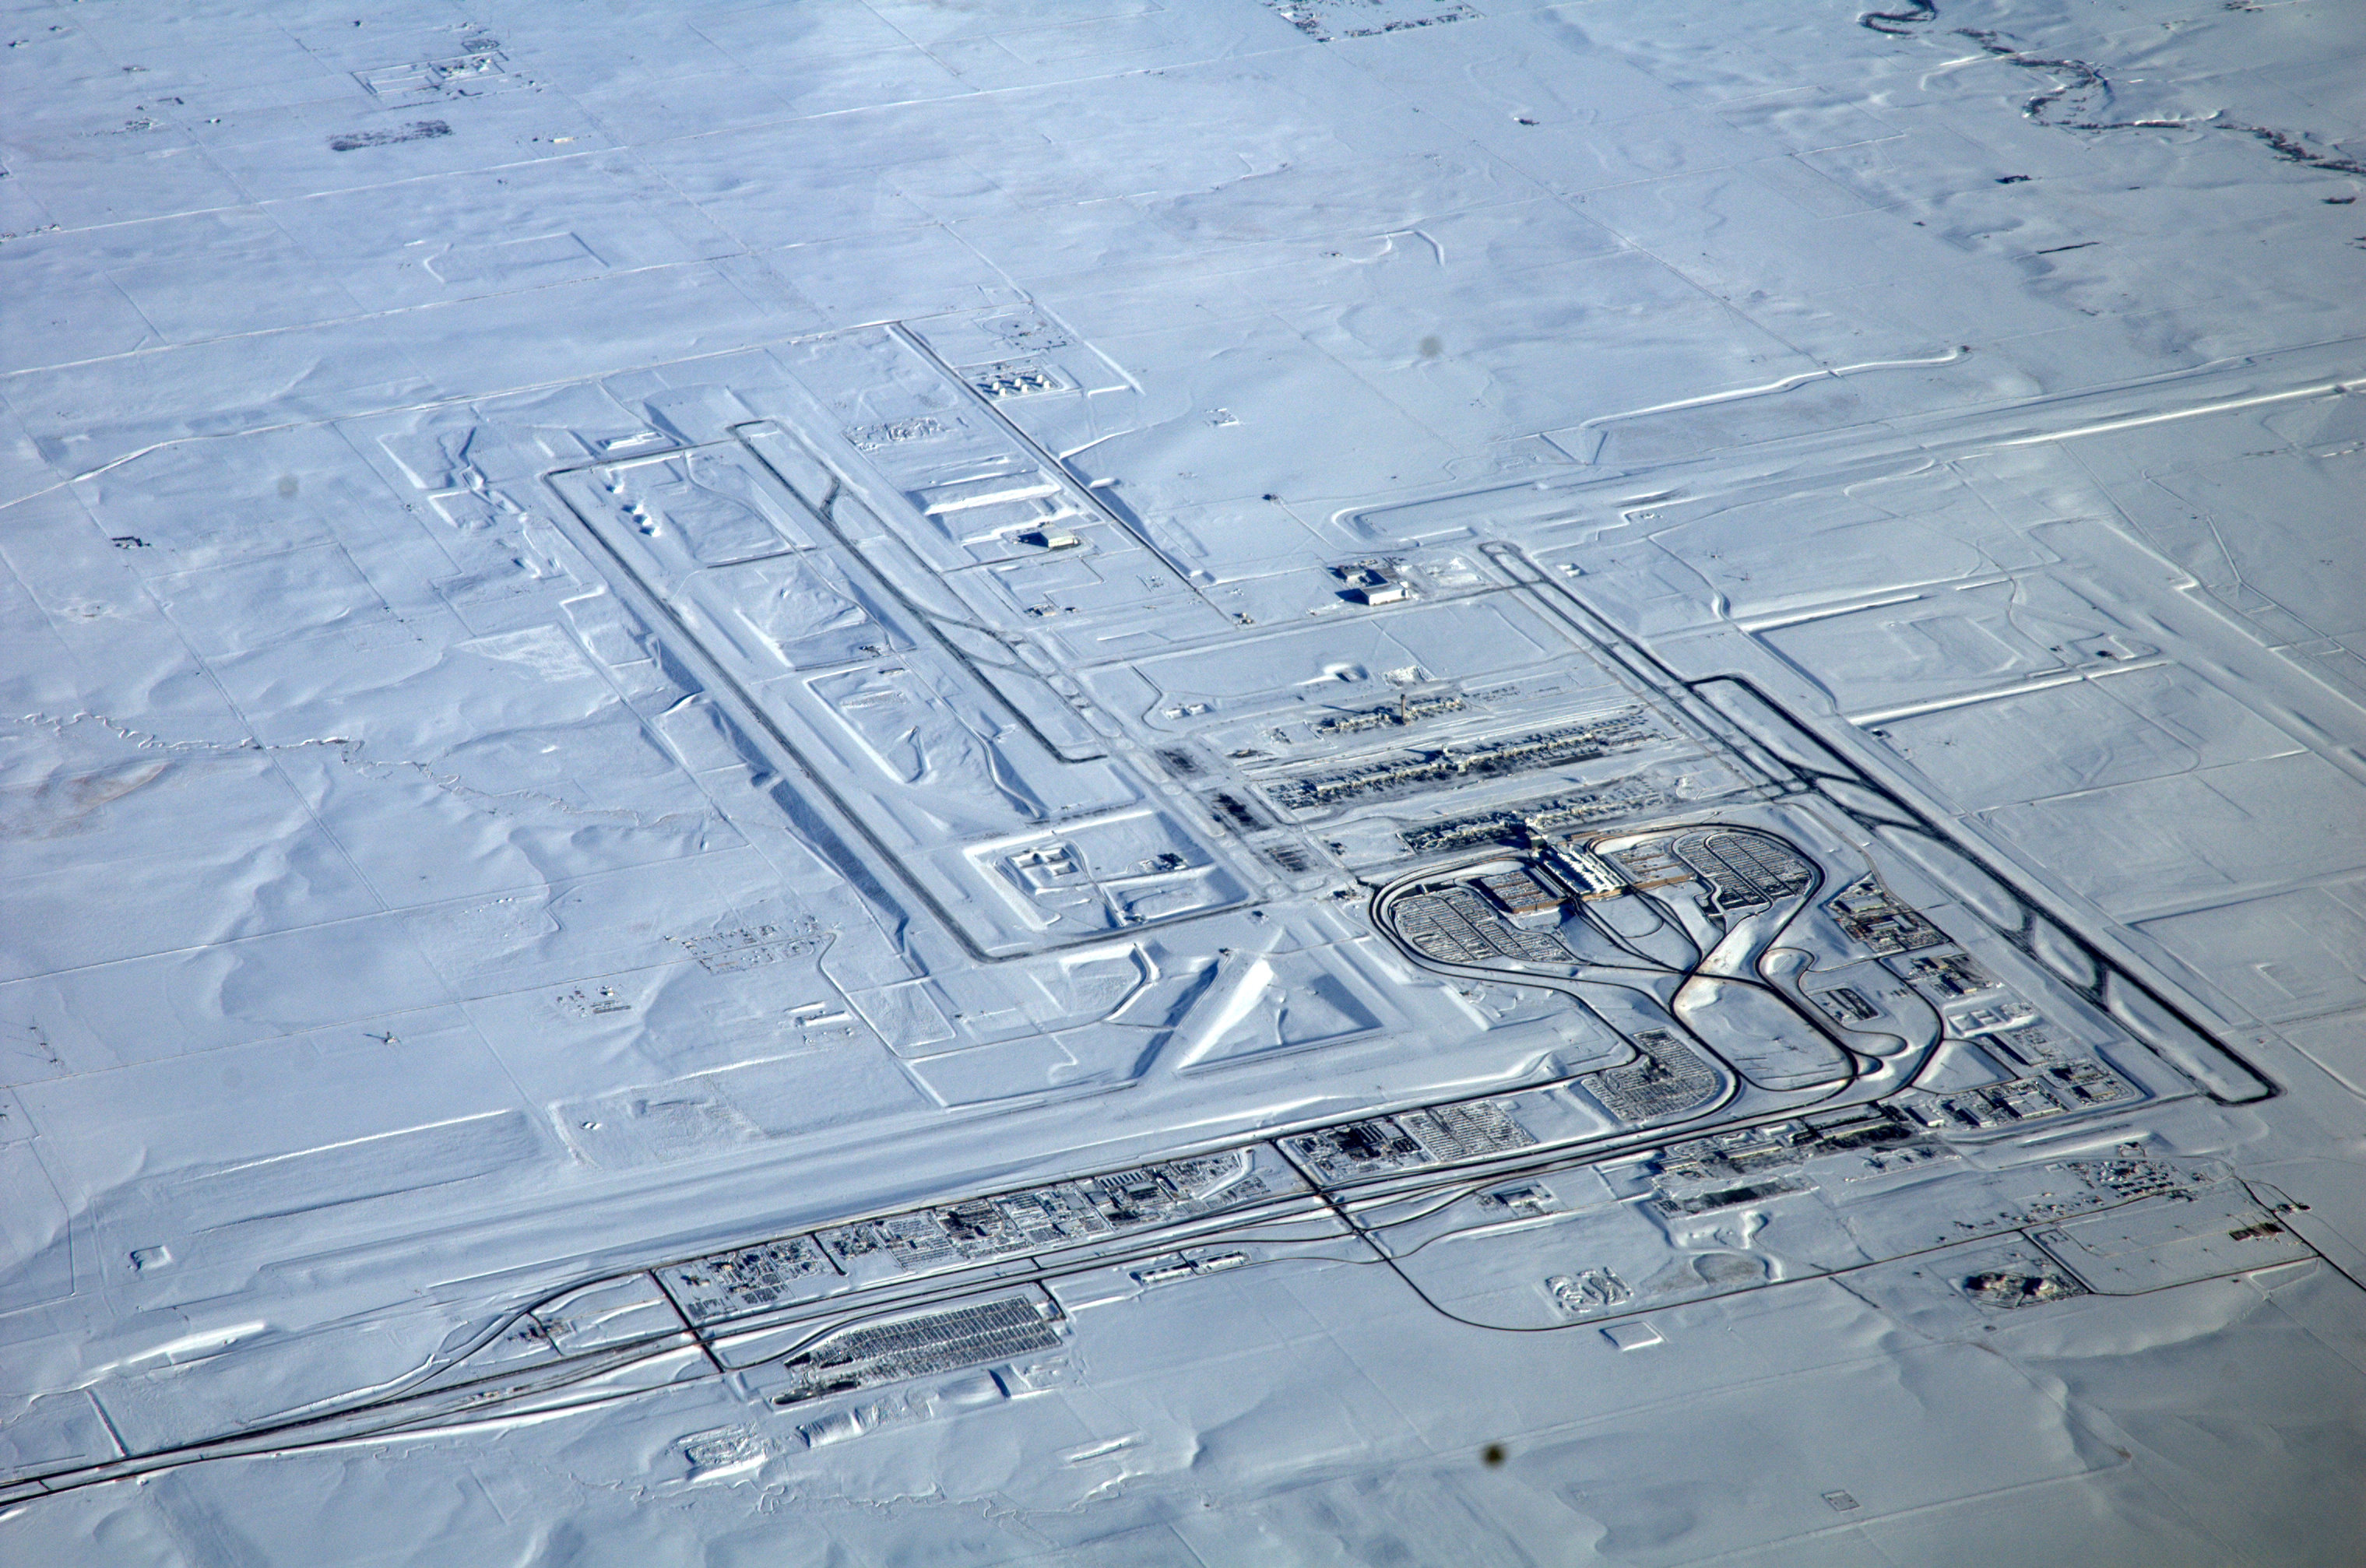 Denver_International_Airport,_snow.jpg